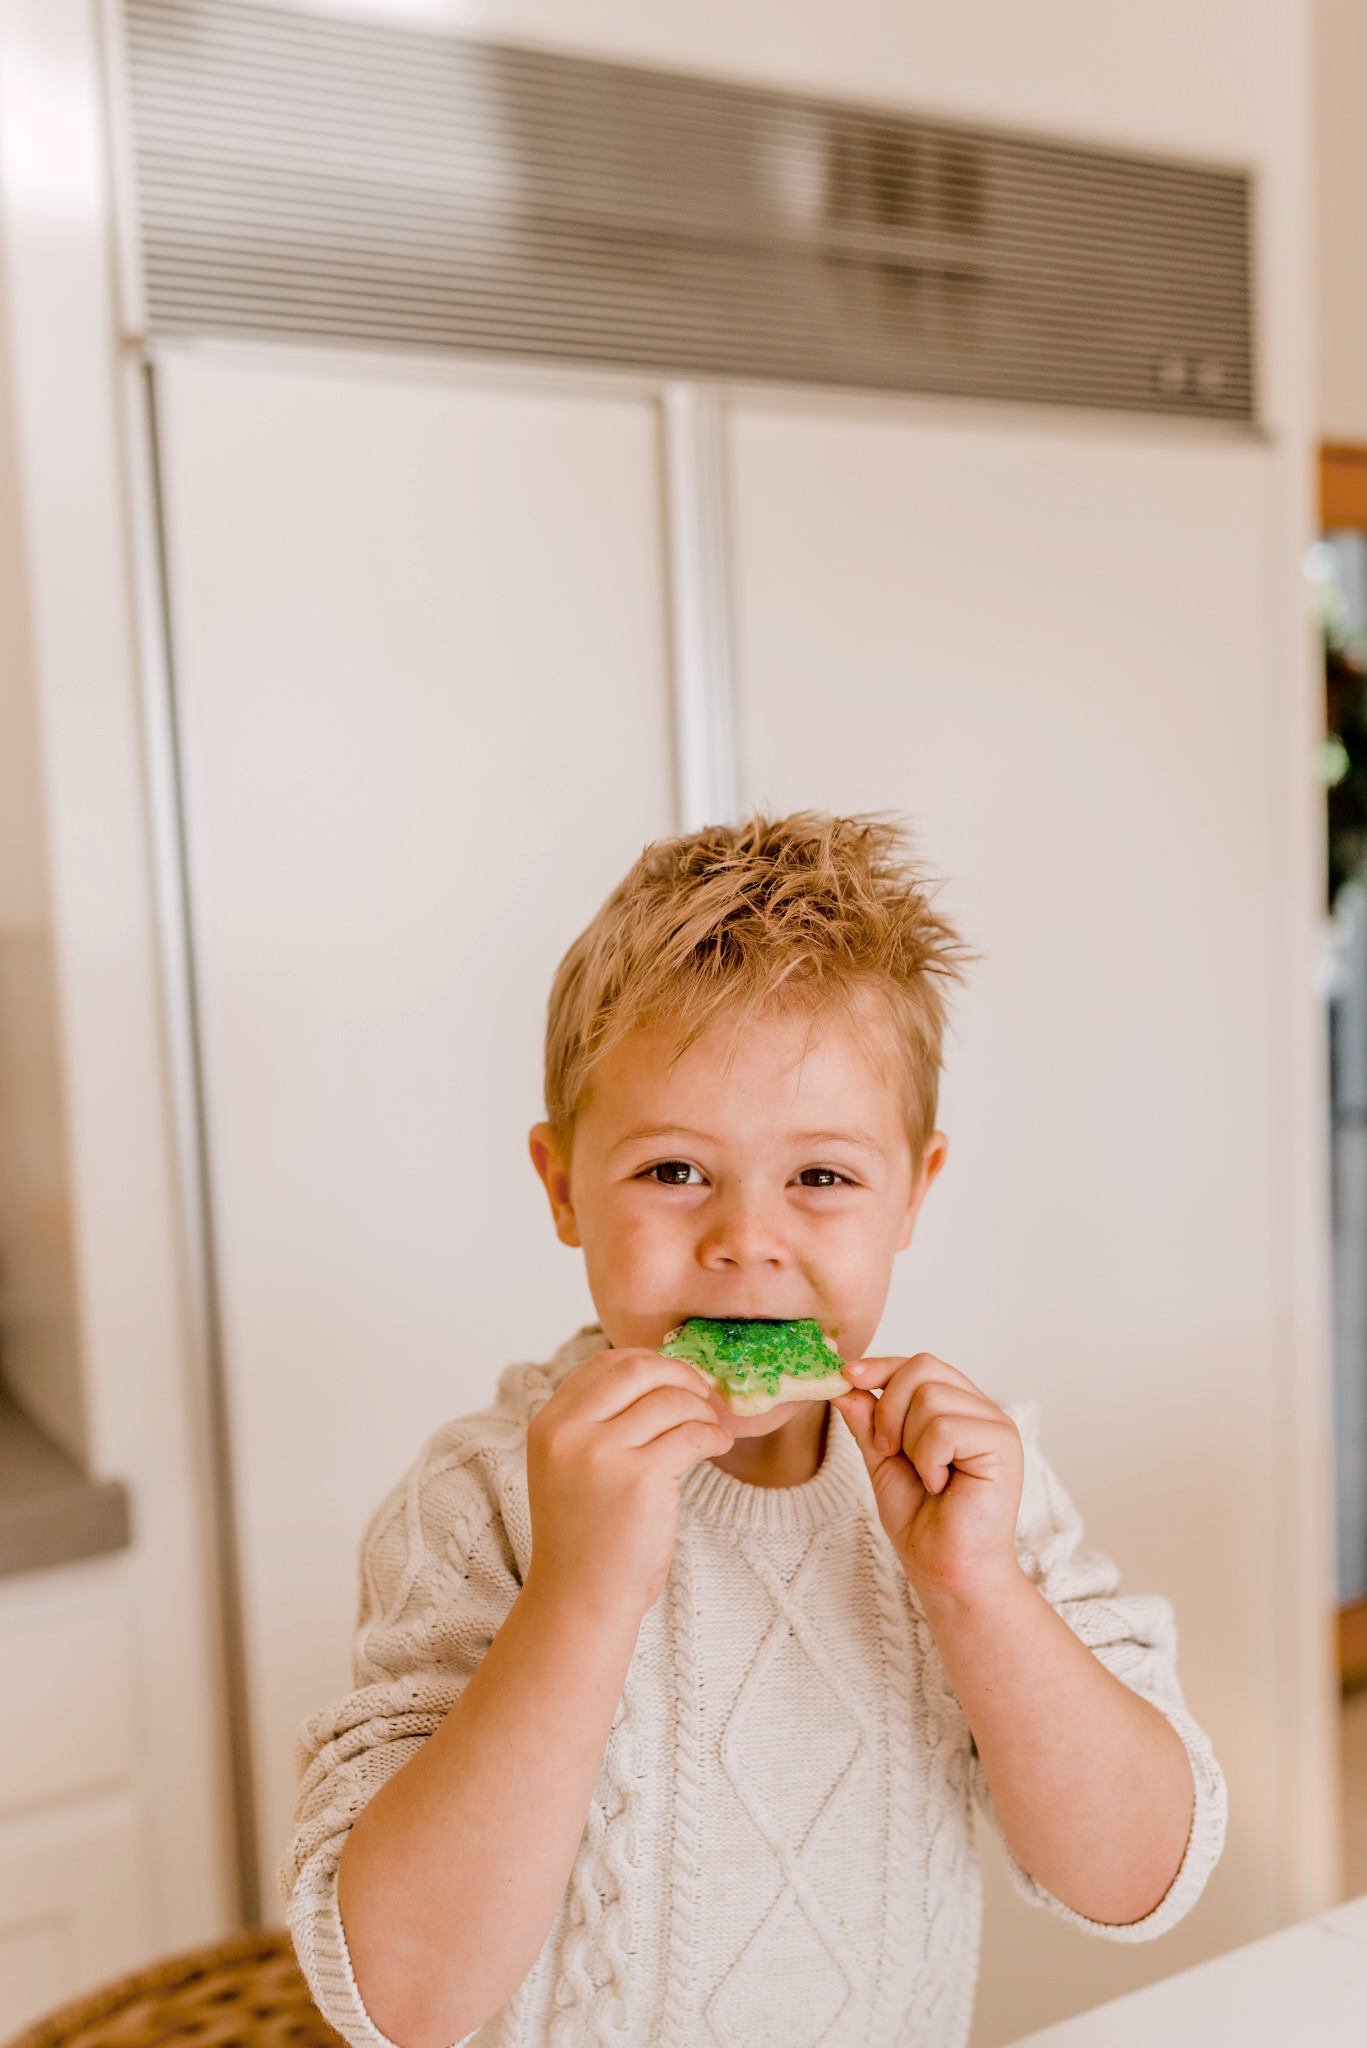 Holiday Traditions with Walmart by popular San Diego lifestyle blog, Navy Grace: image of a little boy eating a Christmas tree shaped sugar cookie with green sprinkles.